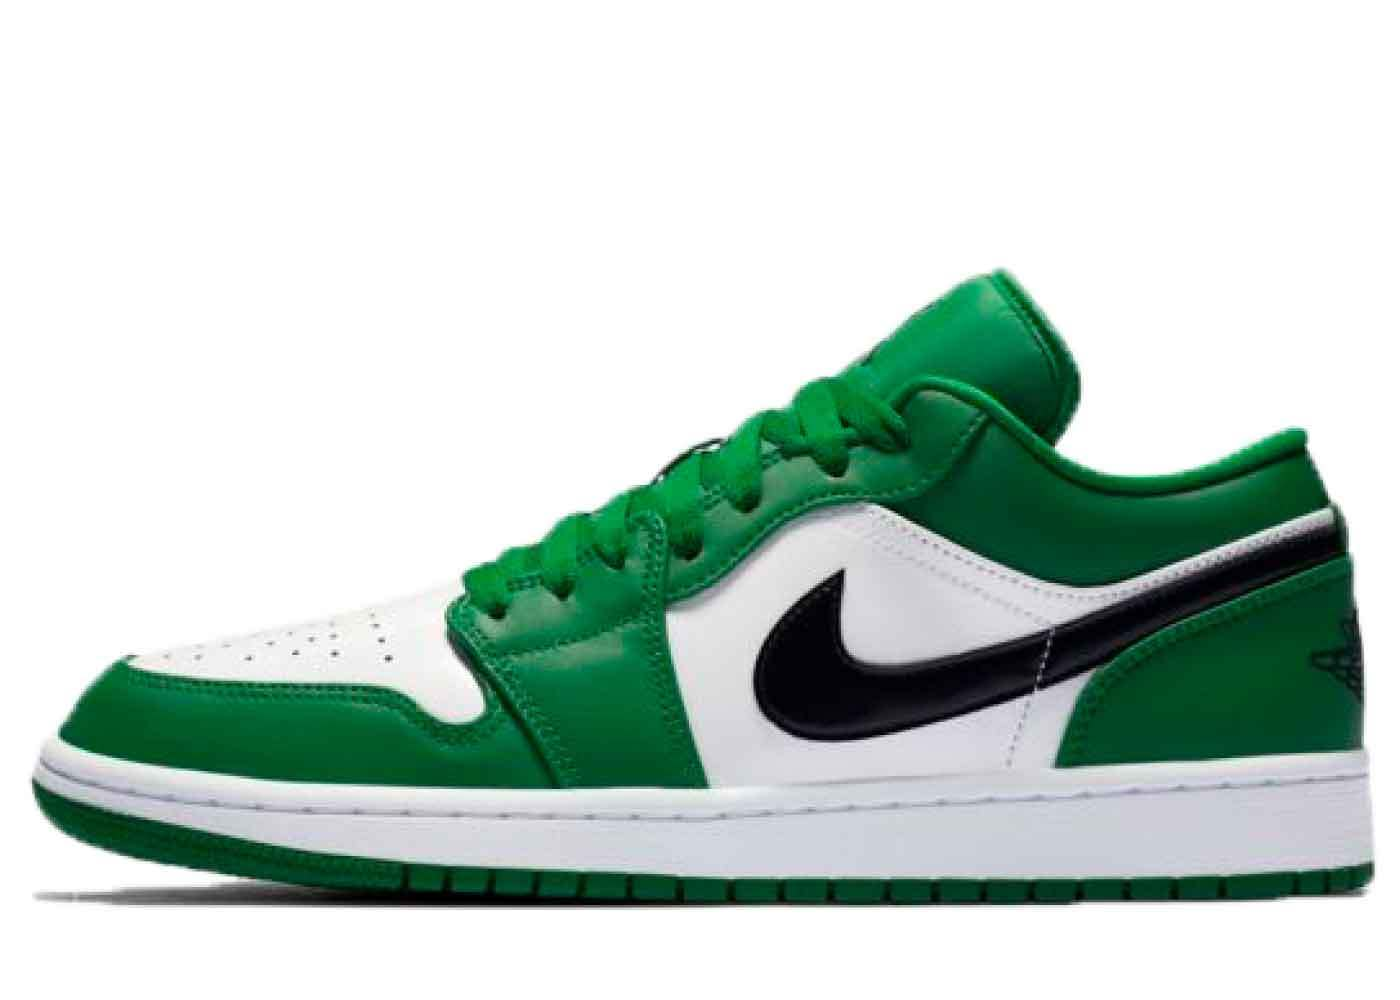 Nike Air jordan 1 Low Pine Greenの写真